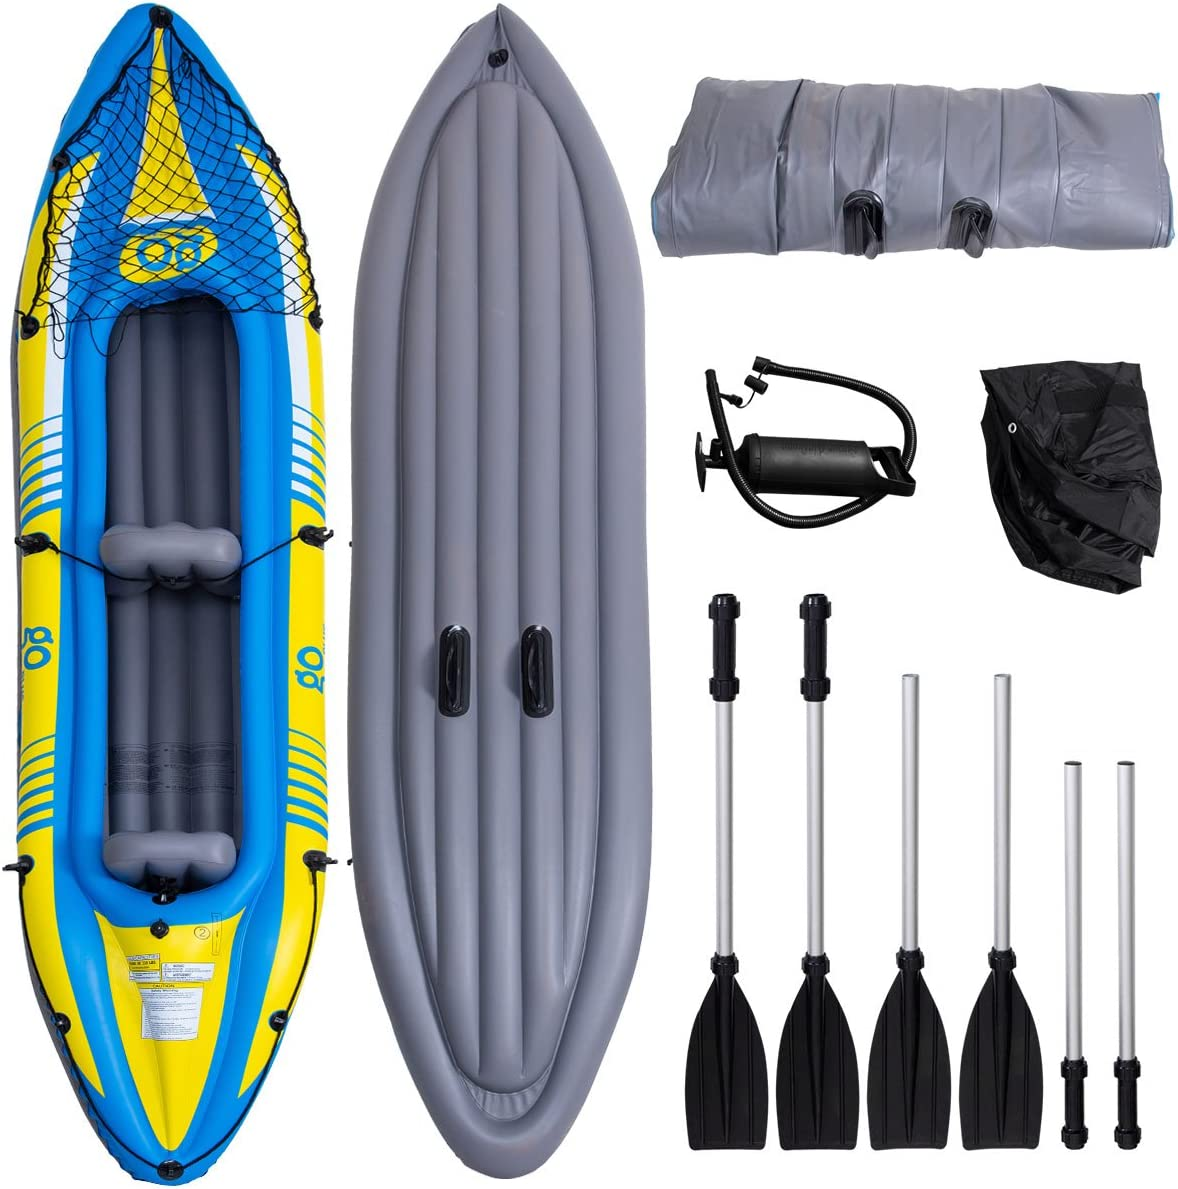 Gymax Kayak, Inflatable Kayak Set 3 Seperate Air Chambers Boat Canoe with Hand Pump and Aluminum Alloy Oar